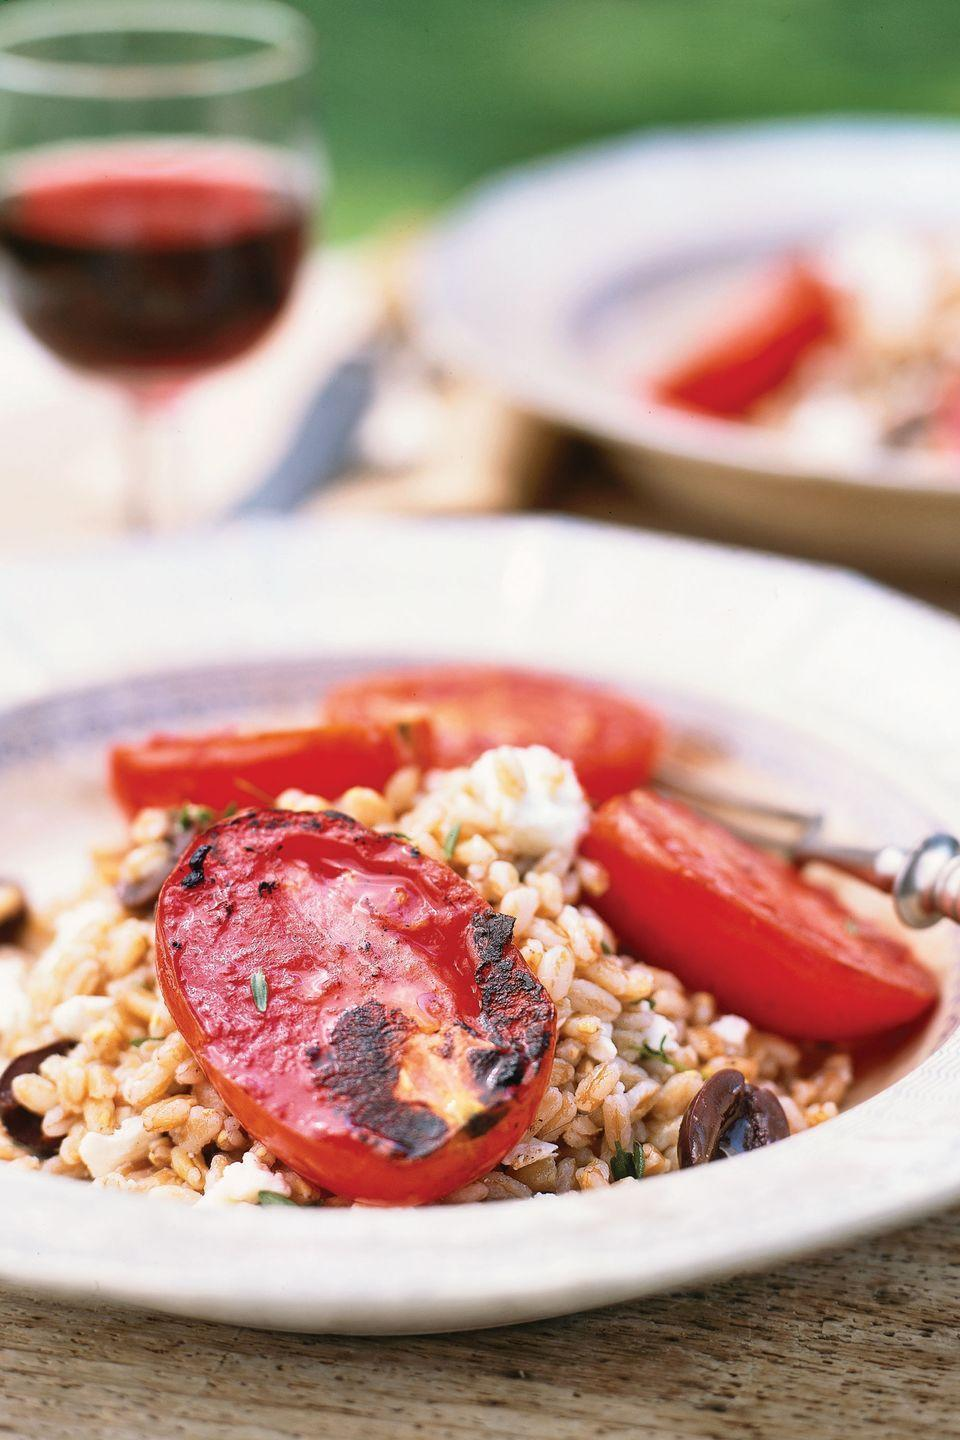 "The natural nuttiness of farro (whole emmer wheat) marries beautifully with the saltiness of the olives and the sweetness of the broiled 'Roma' tomatoes. Serve with a lightly chilled fruity red wine. To save time, substitute a quick-cooking grain or pasta such as couscous, orzo, or instant brown rice for farro. <a href=""https://www.countryliving.com/food-drinks/recipes/a1192/broiled-tomatoes-farro-salad-3299/"" rel=""nofollow noopener"" target=""_blank"" data-ylk=""slk:Get the recipe."" class=""link rapid-noclick-resp""><strong>Get the recipe.</strong></a>"